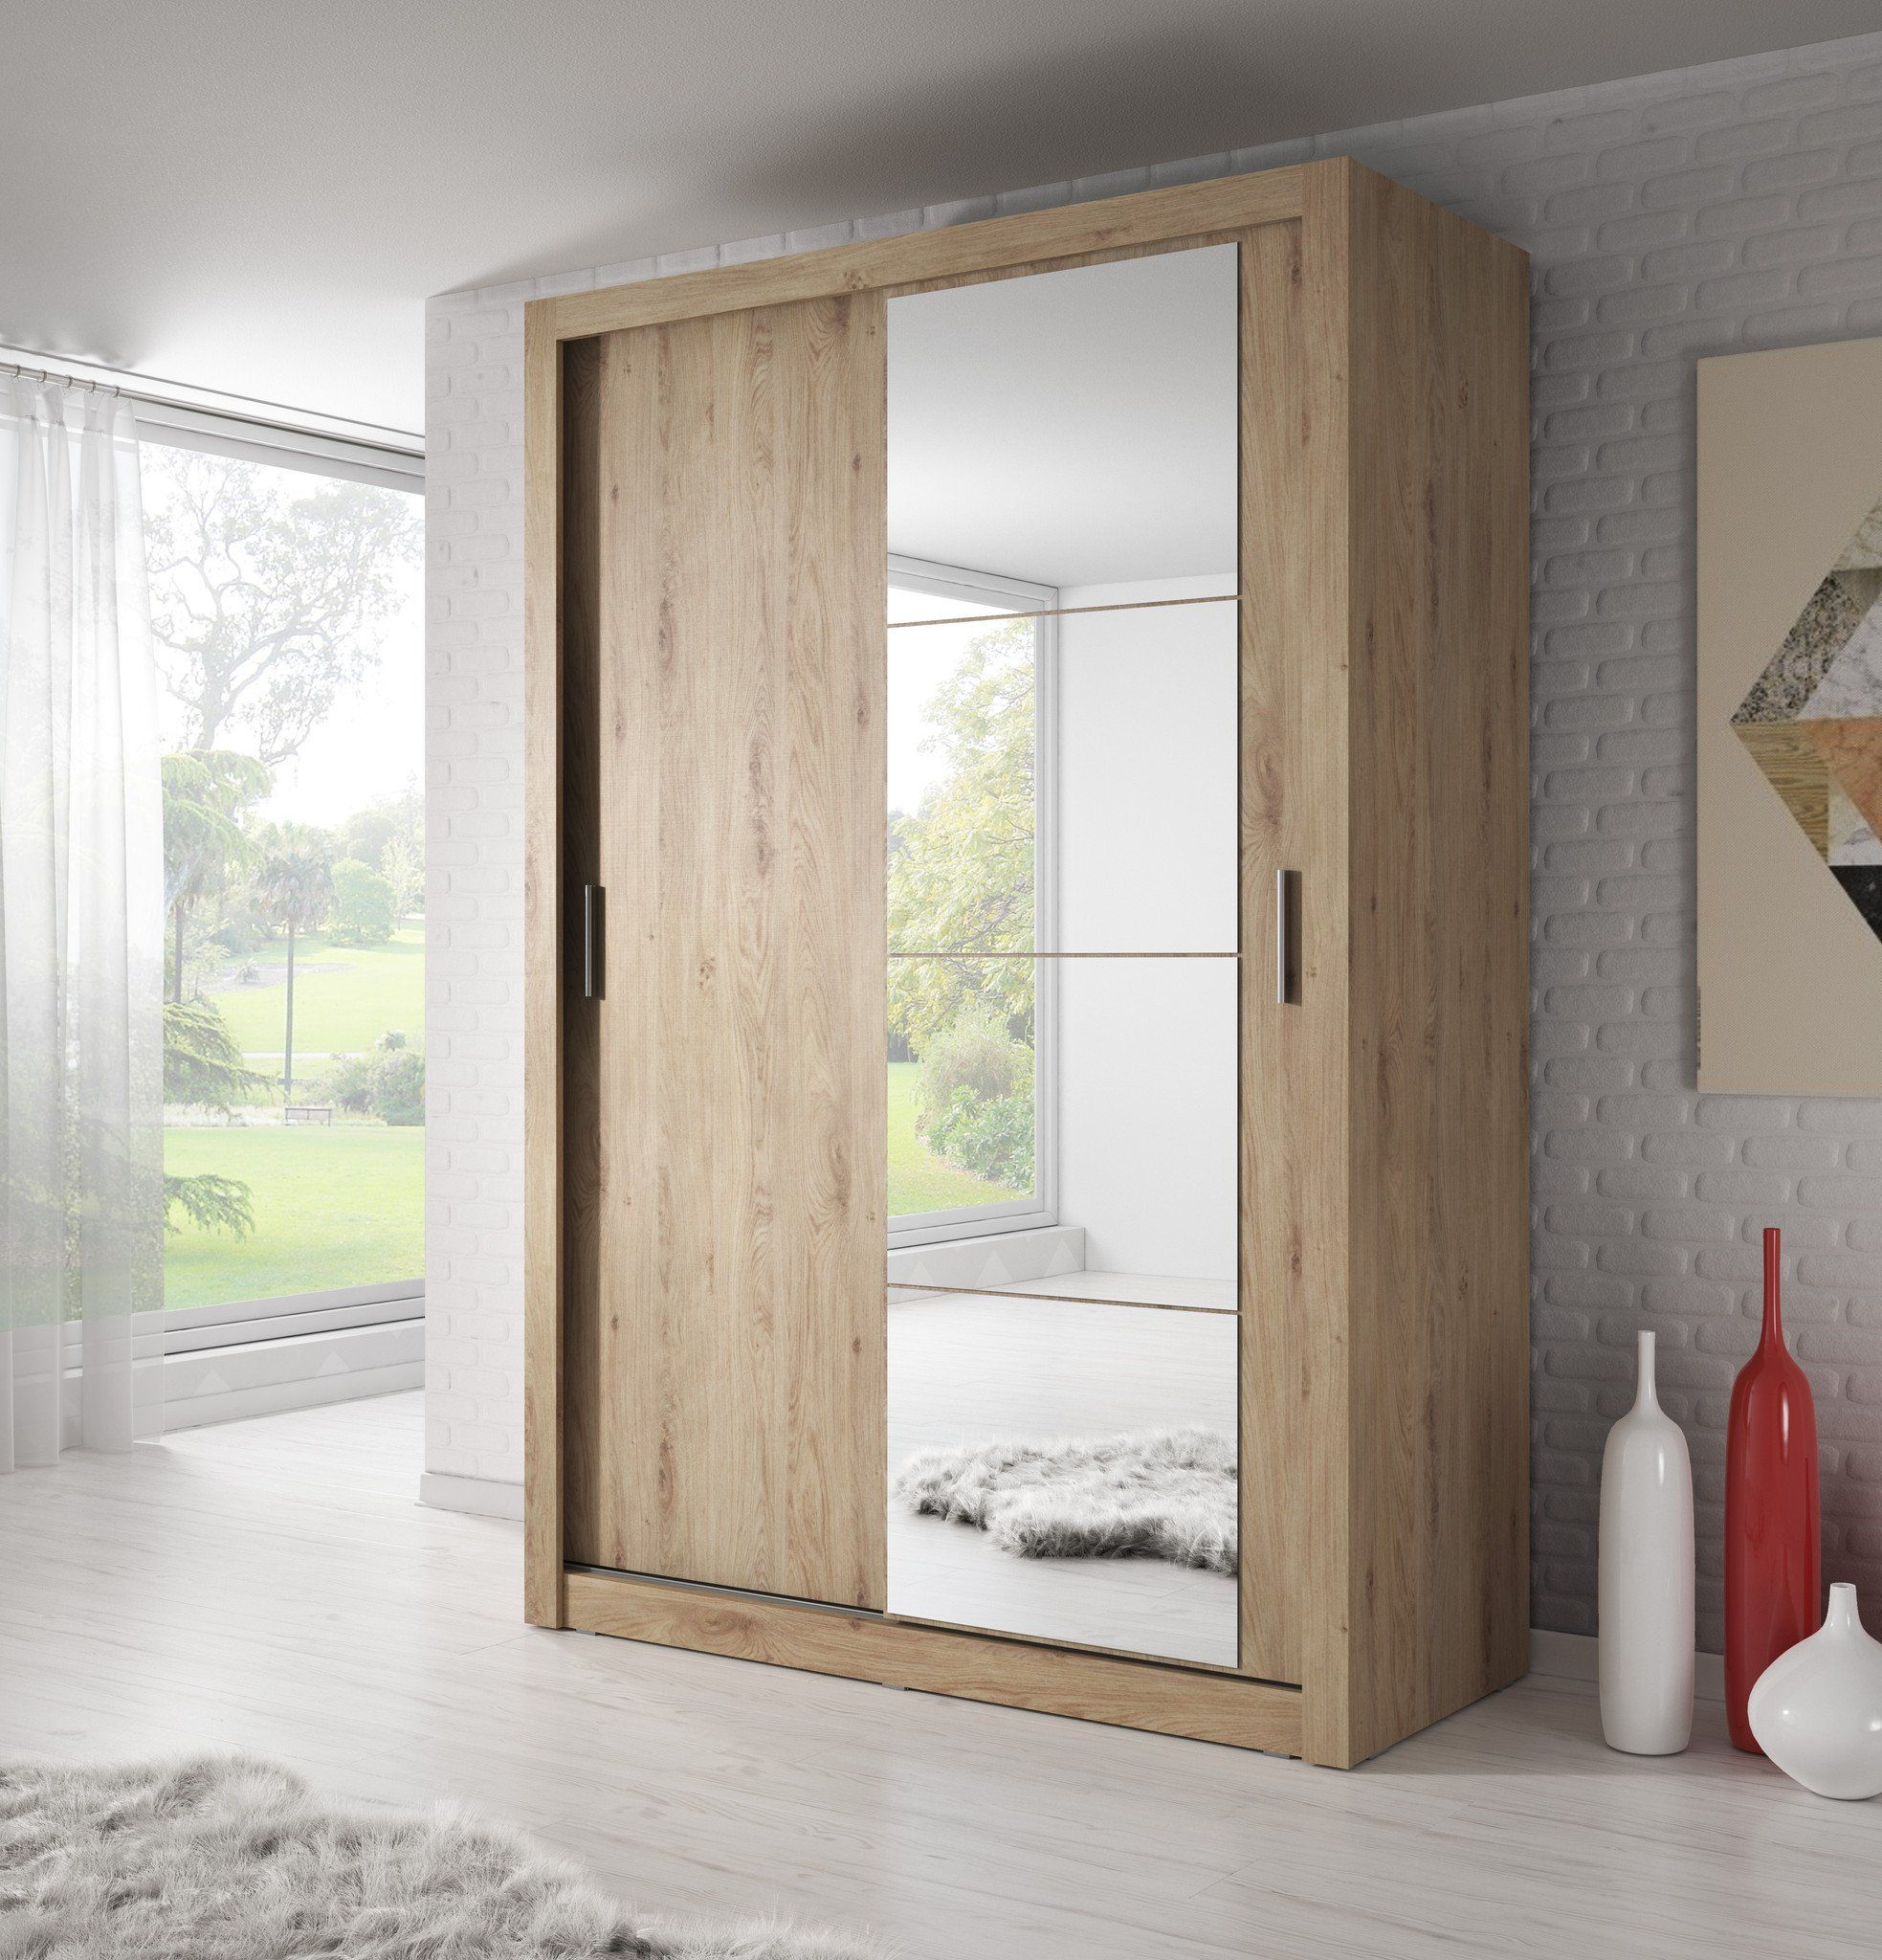 Where Space Is Limited And Appearance Is Essential Sliding Door Wardrobe Is Perfect Solution F Sliding Wardrobe Wardrobe Design Bedroom Sliding Wardrobe Doors